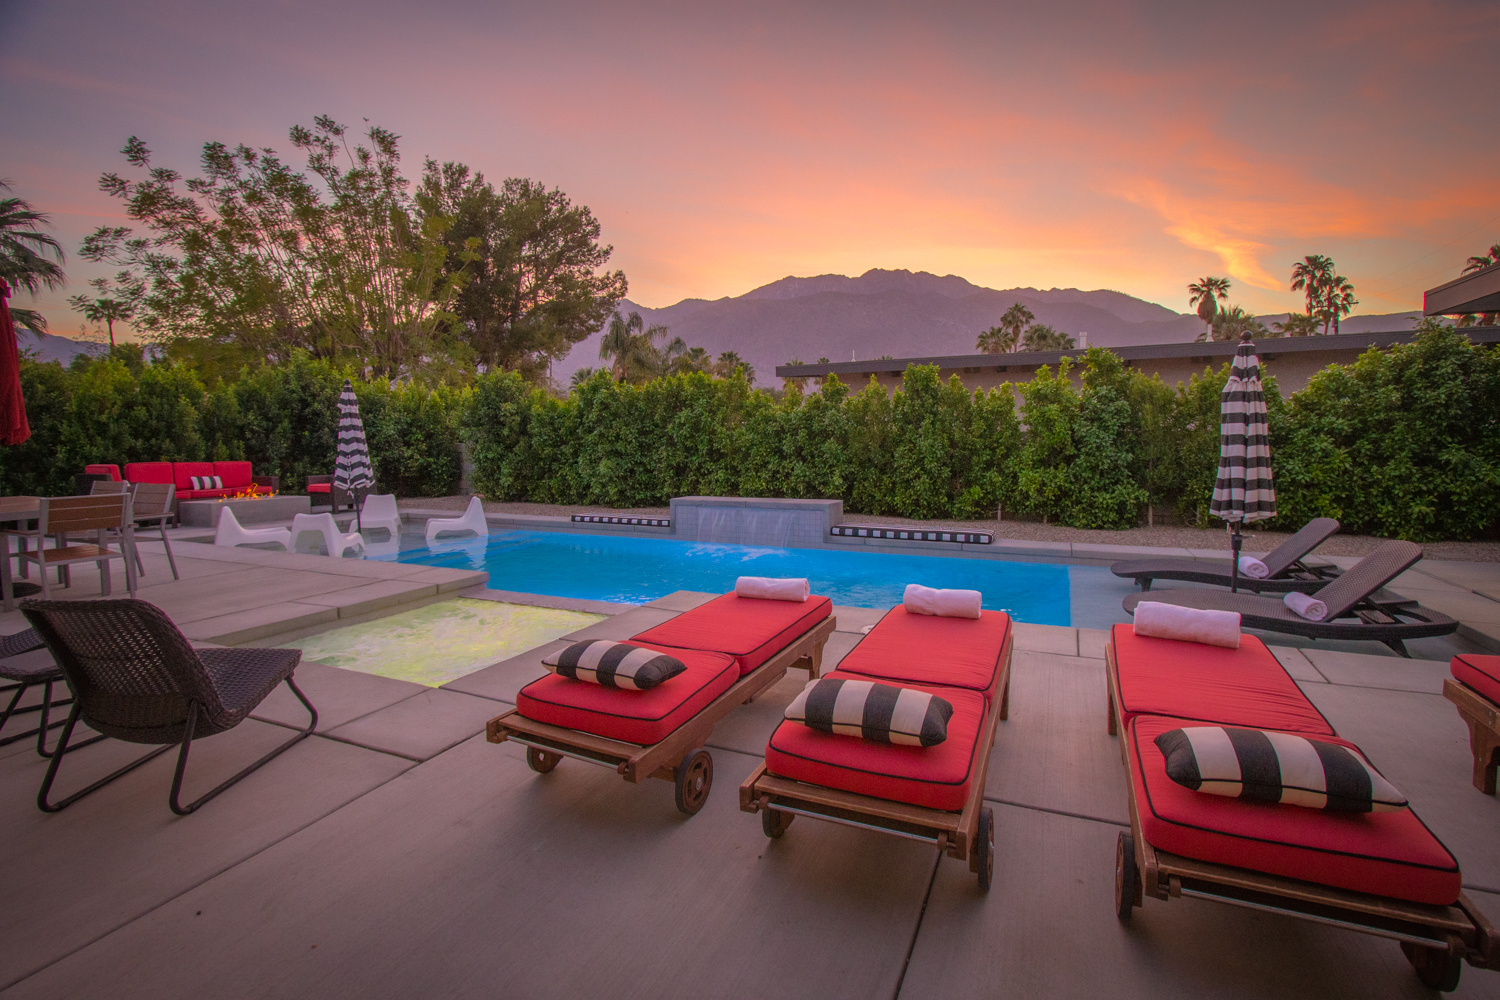 Palms-at-Park-Palm-Springs-Vacation-Rental-Home-18.jpg